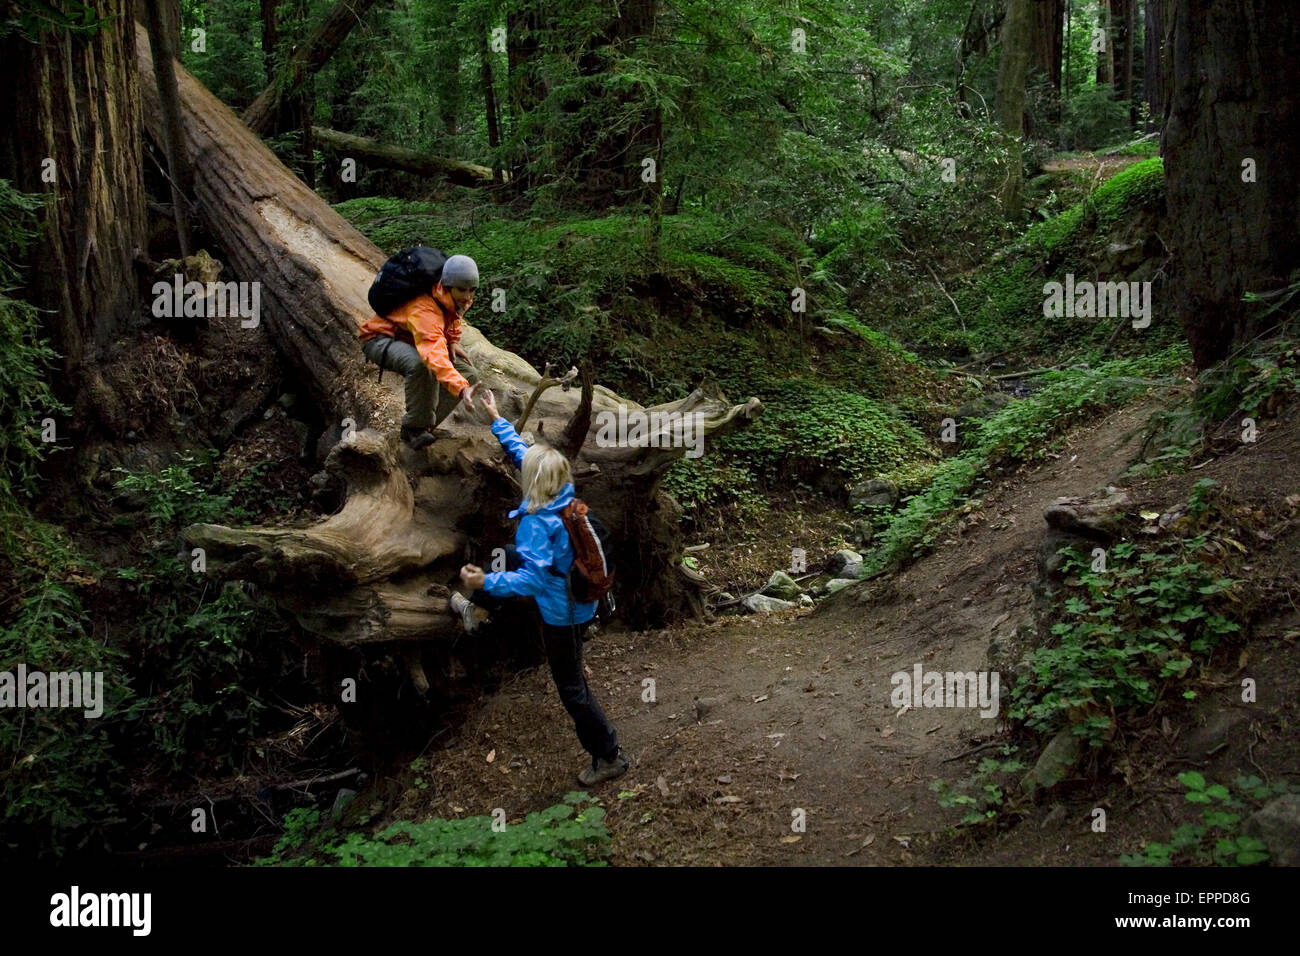 Couple hiking in the redwood forests of Big Sur. - Stock Image